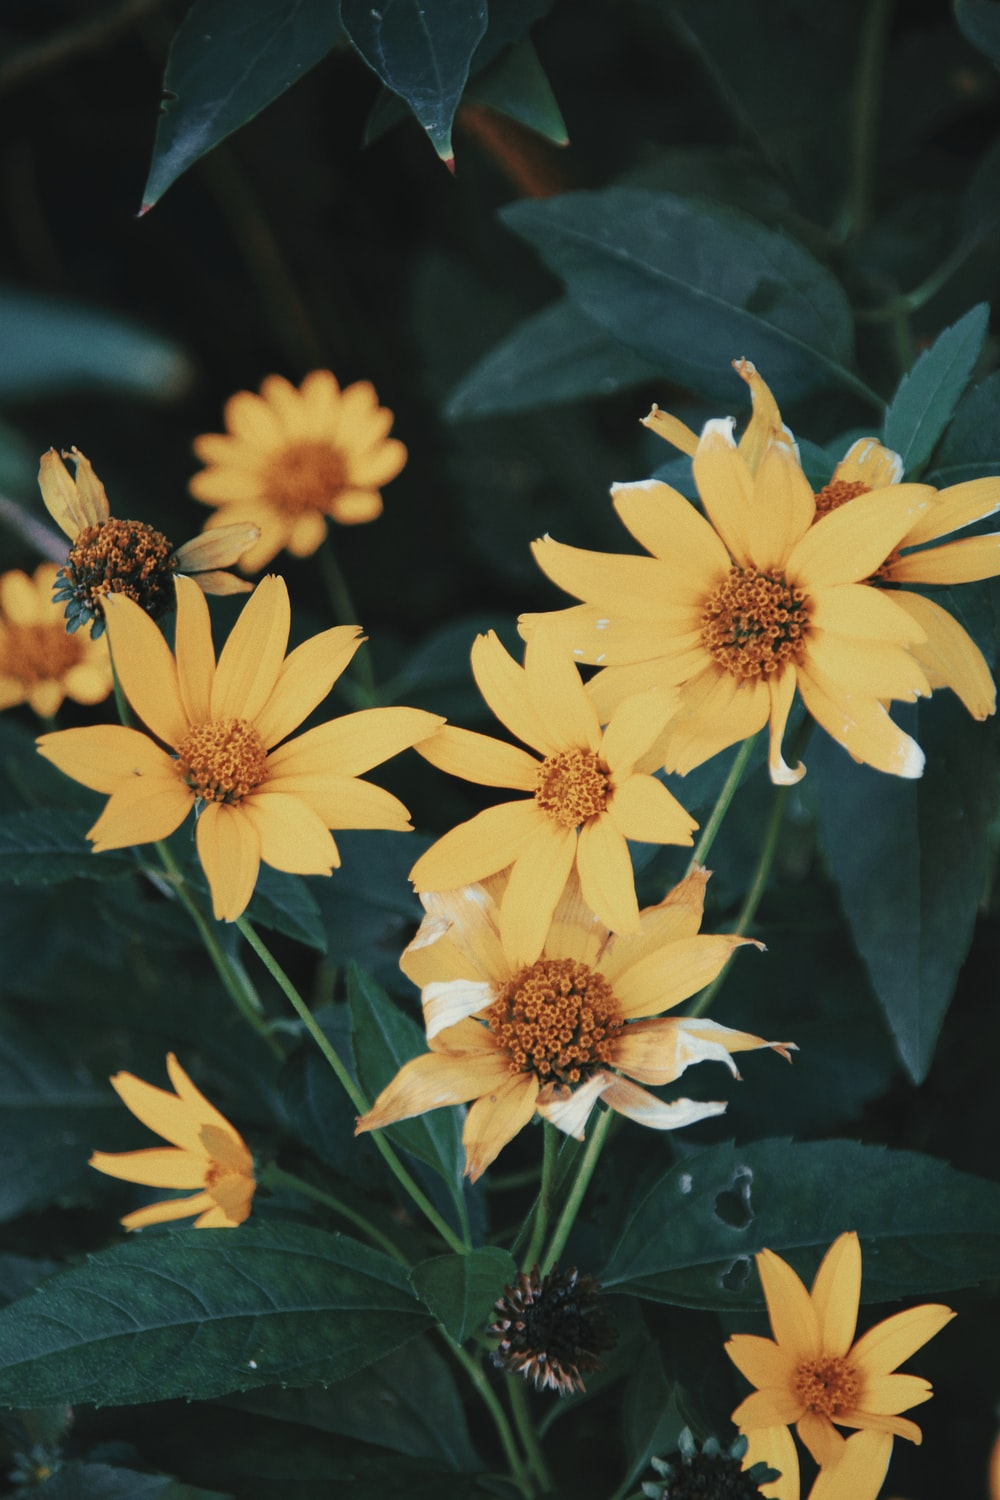 yellow petaled flowers during daytime photo